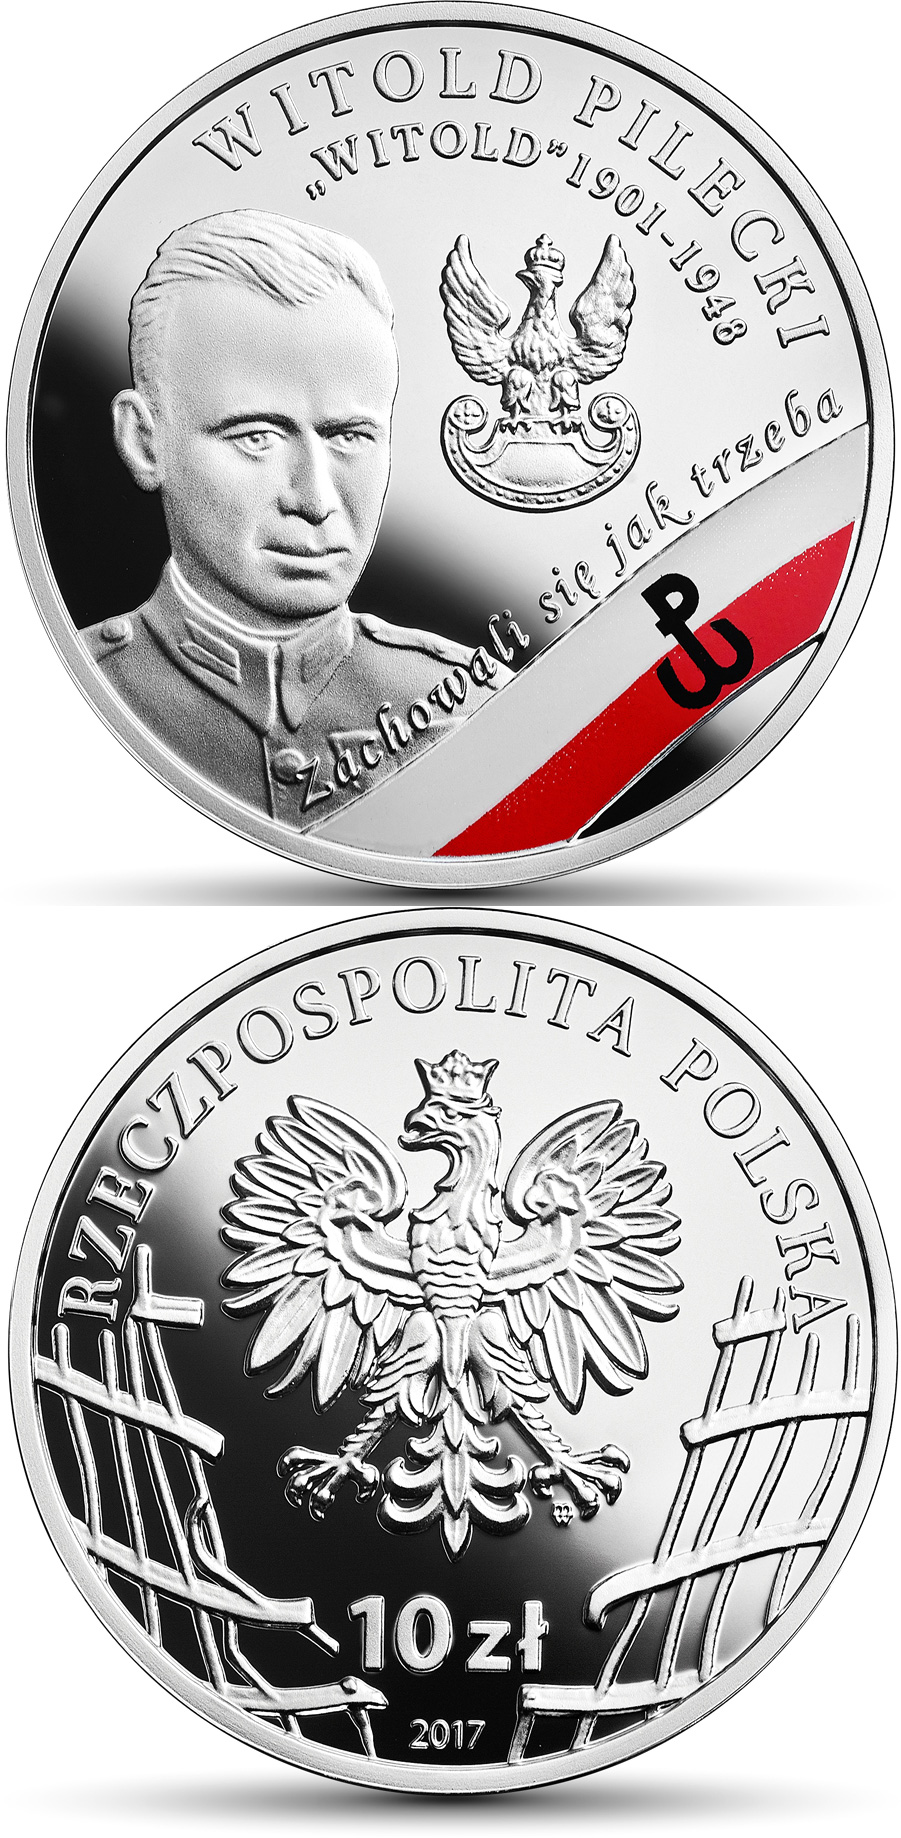 10 zloty The Enduring Soldiers Accursed by the Communists Witold Pilecki Witold - 2017 - Poland